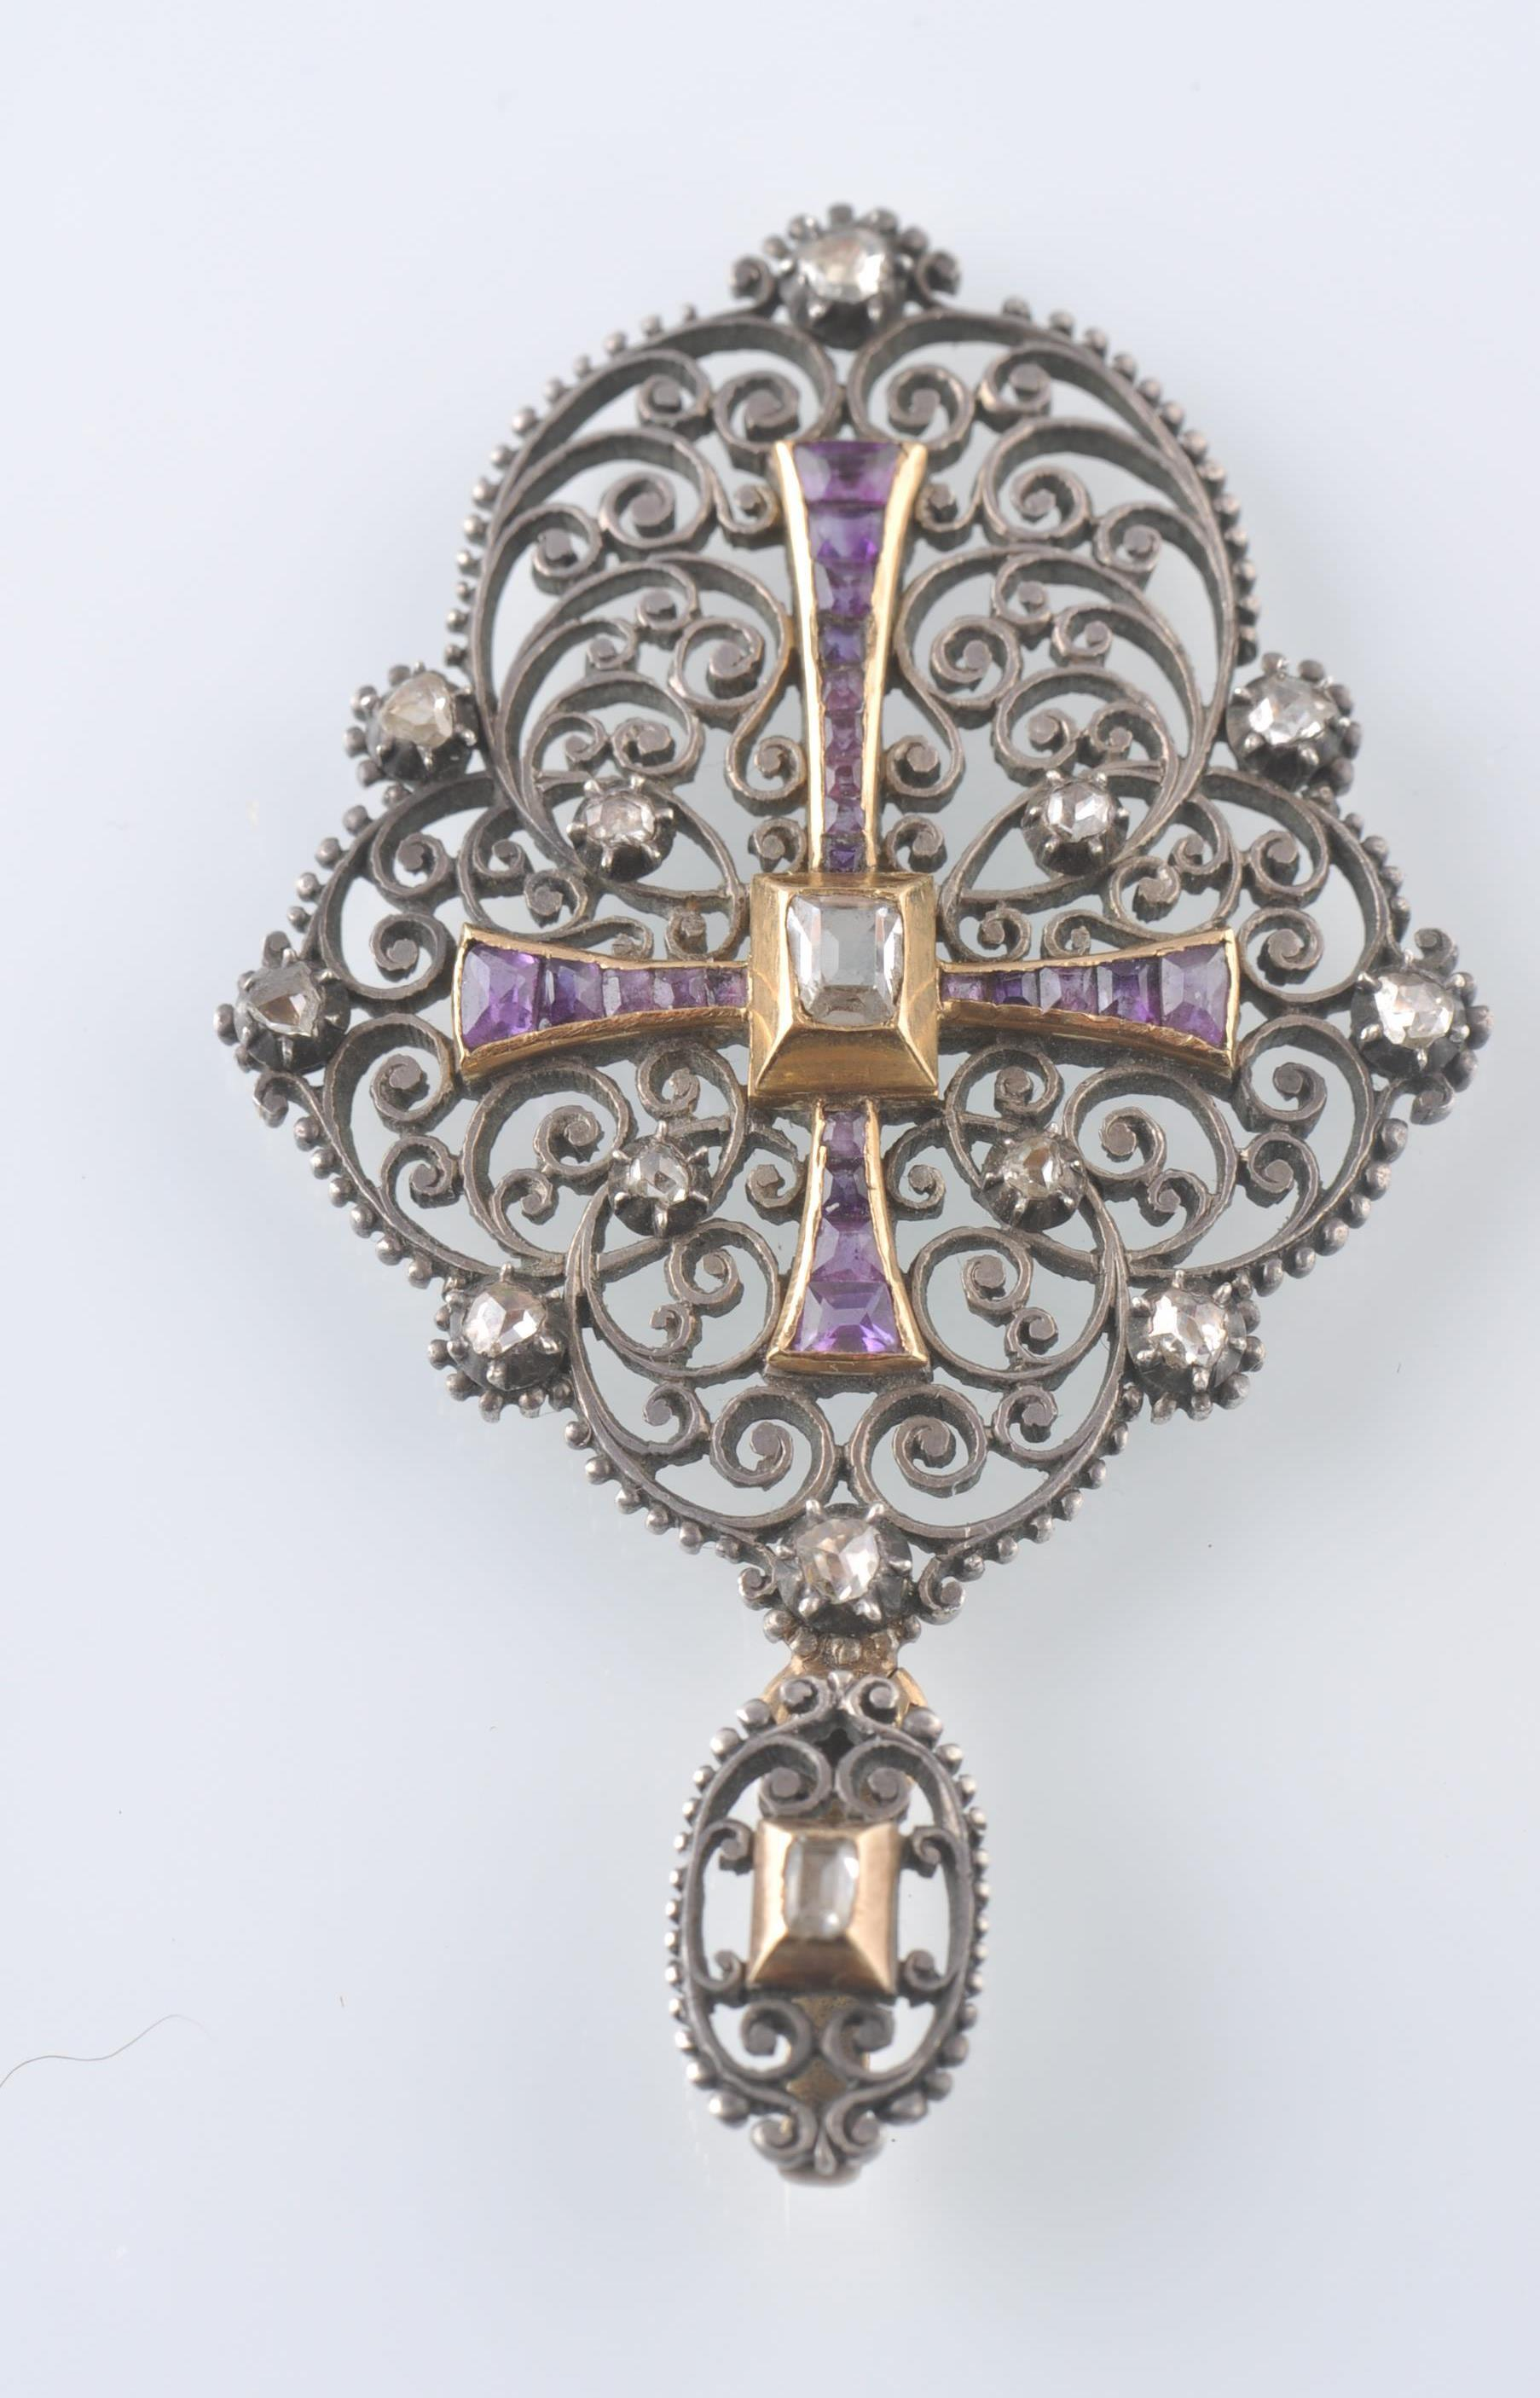 Lot 46 - A 19TH CENTURY FRENCH / BELGIAN SILVER, GOLD, DIAM